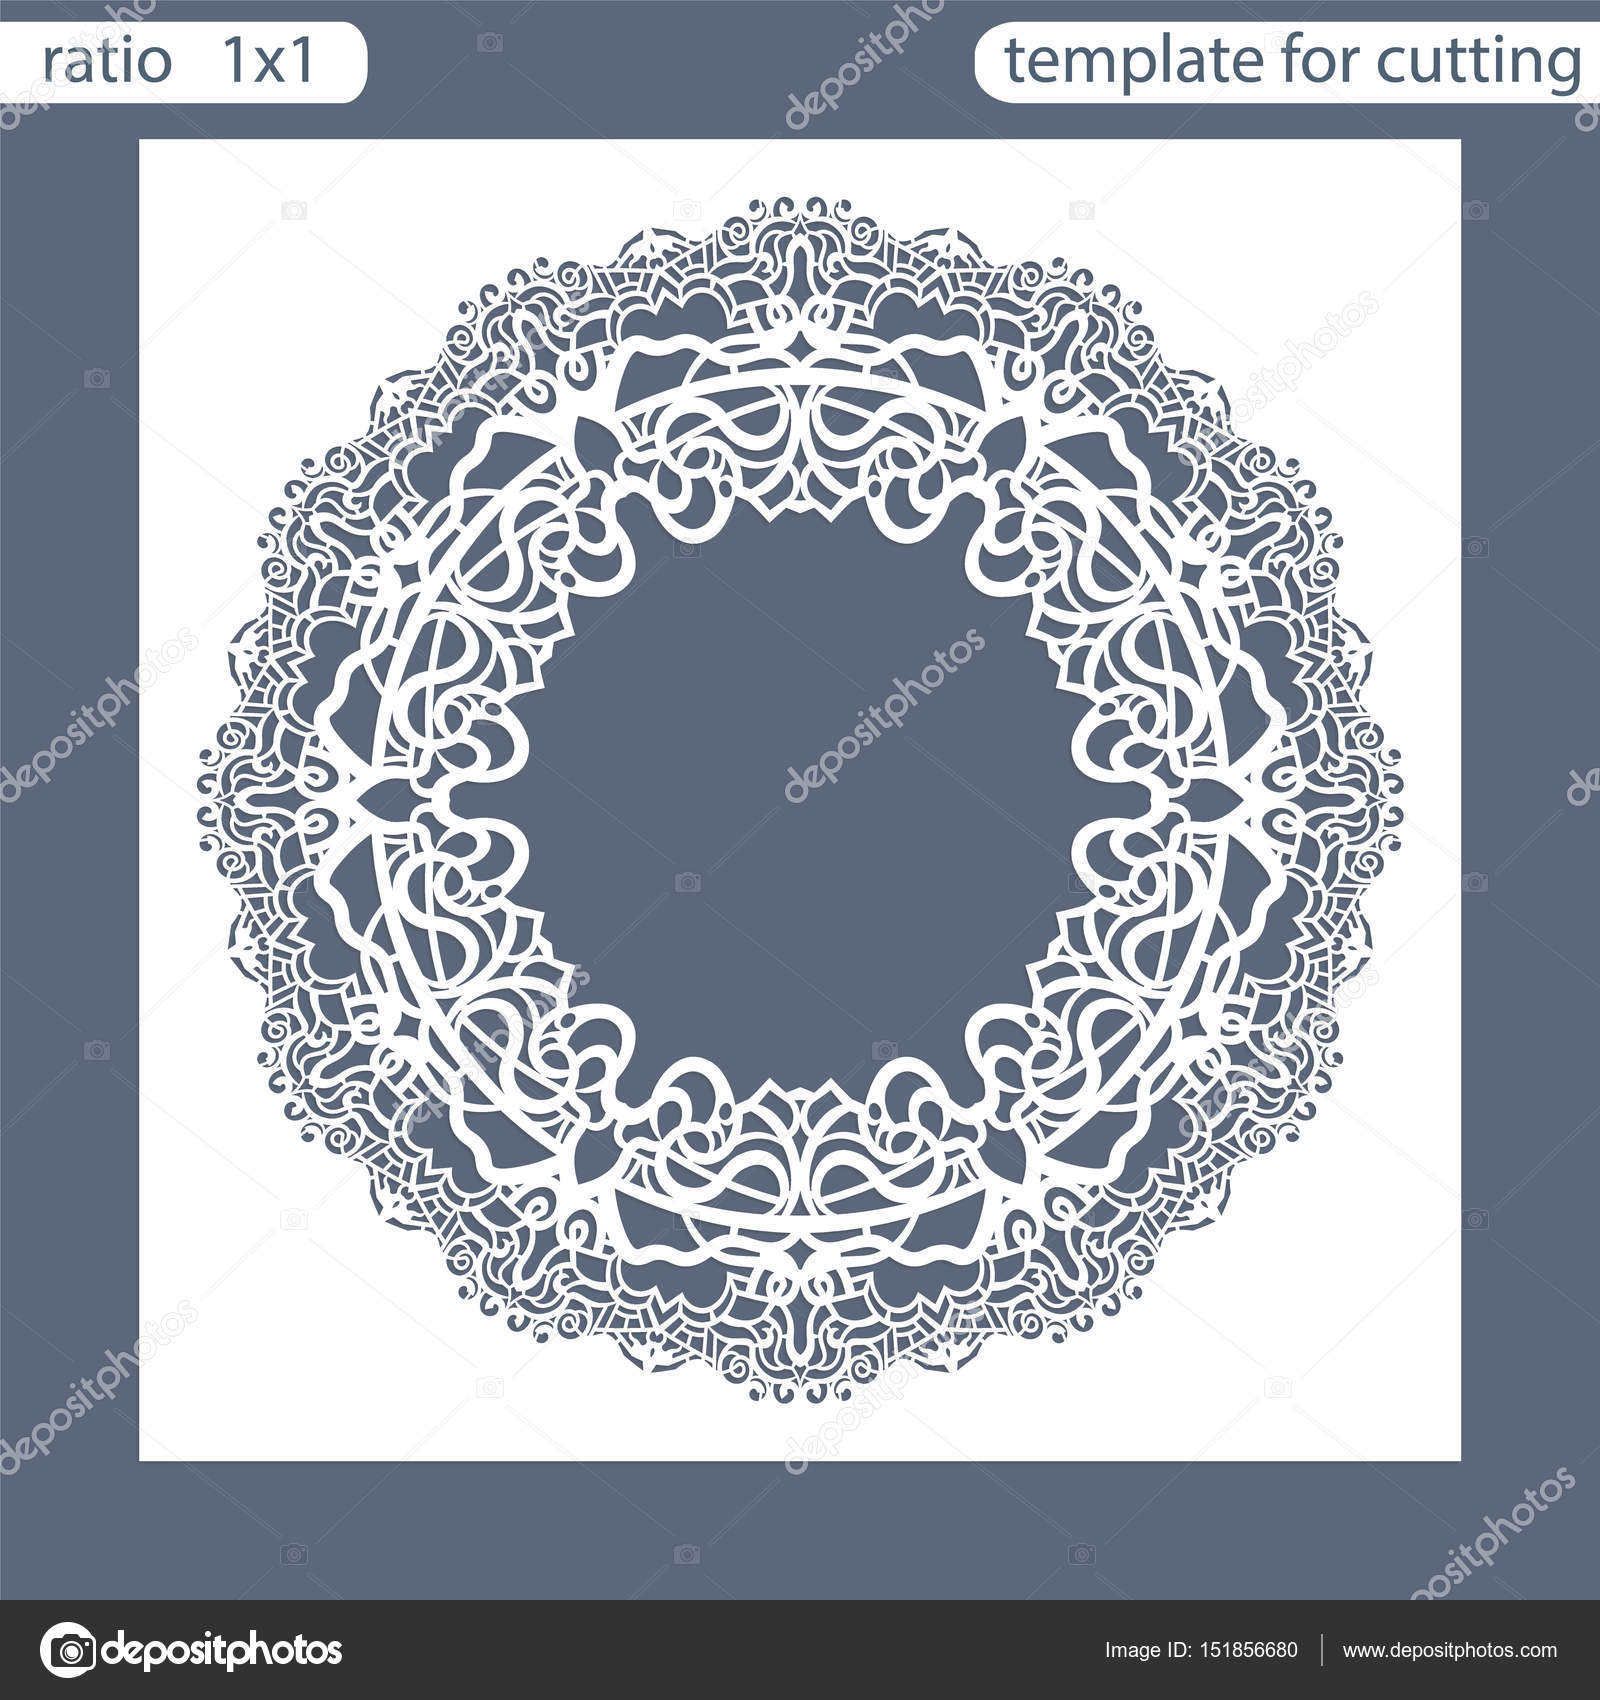 Laser Cut Wedding Invitation Card Template Out The Paper With Lace Pattern: Cut Out Wedding Invitation Card Templates At Websimilar.org